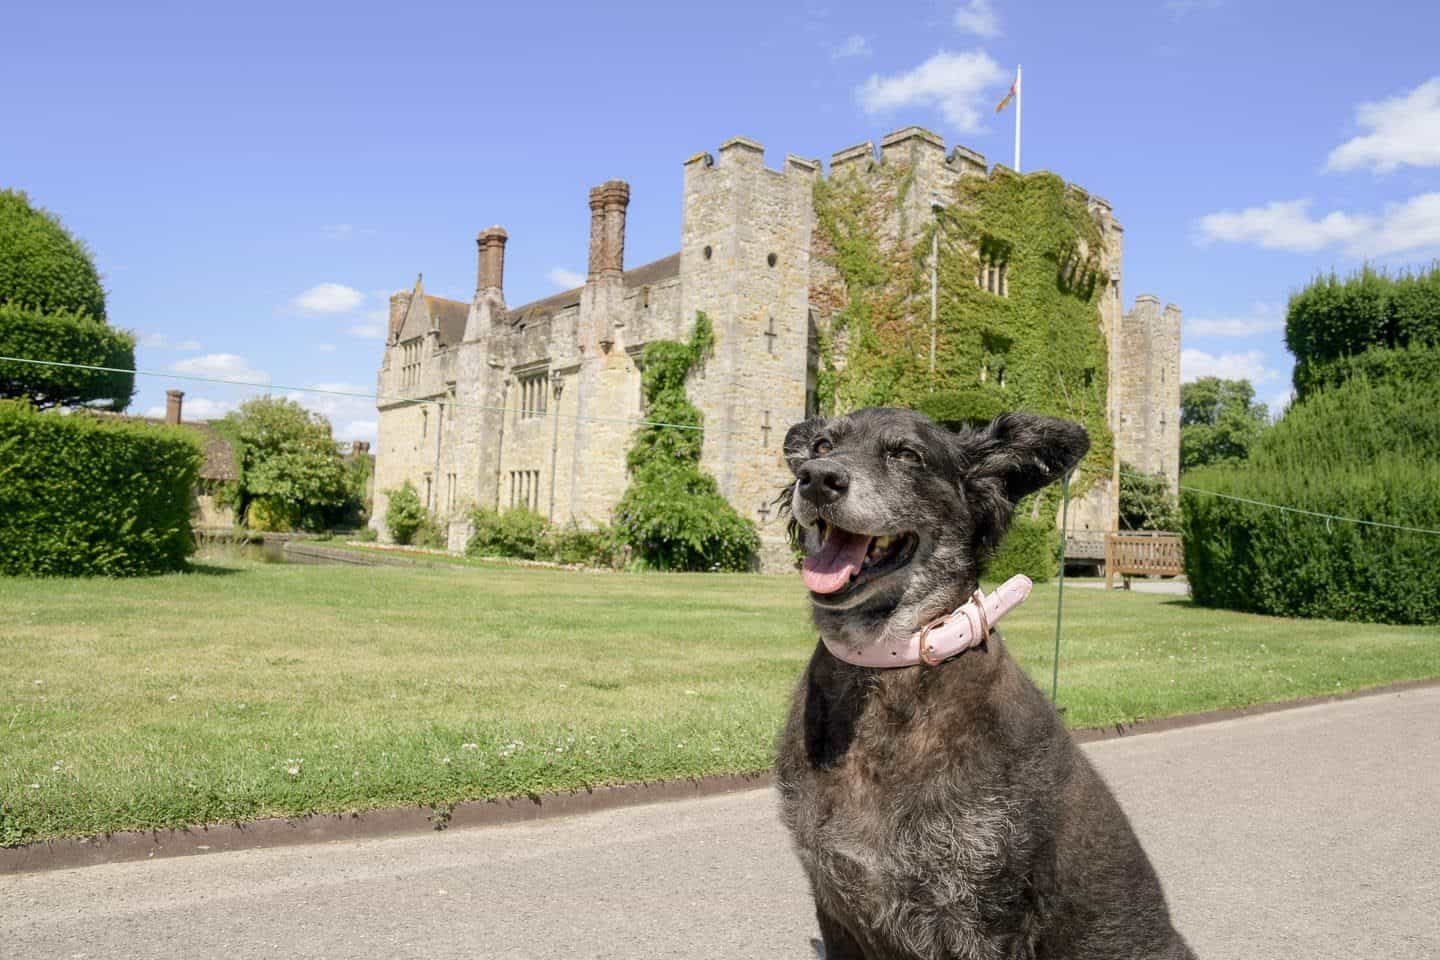 8 Reasons To Visit the Stunning Dog-friendly Hever Castle